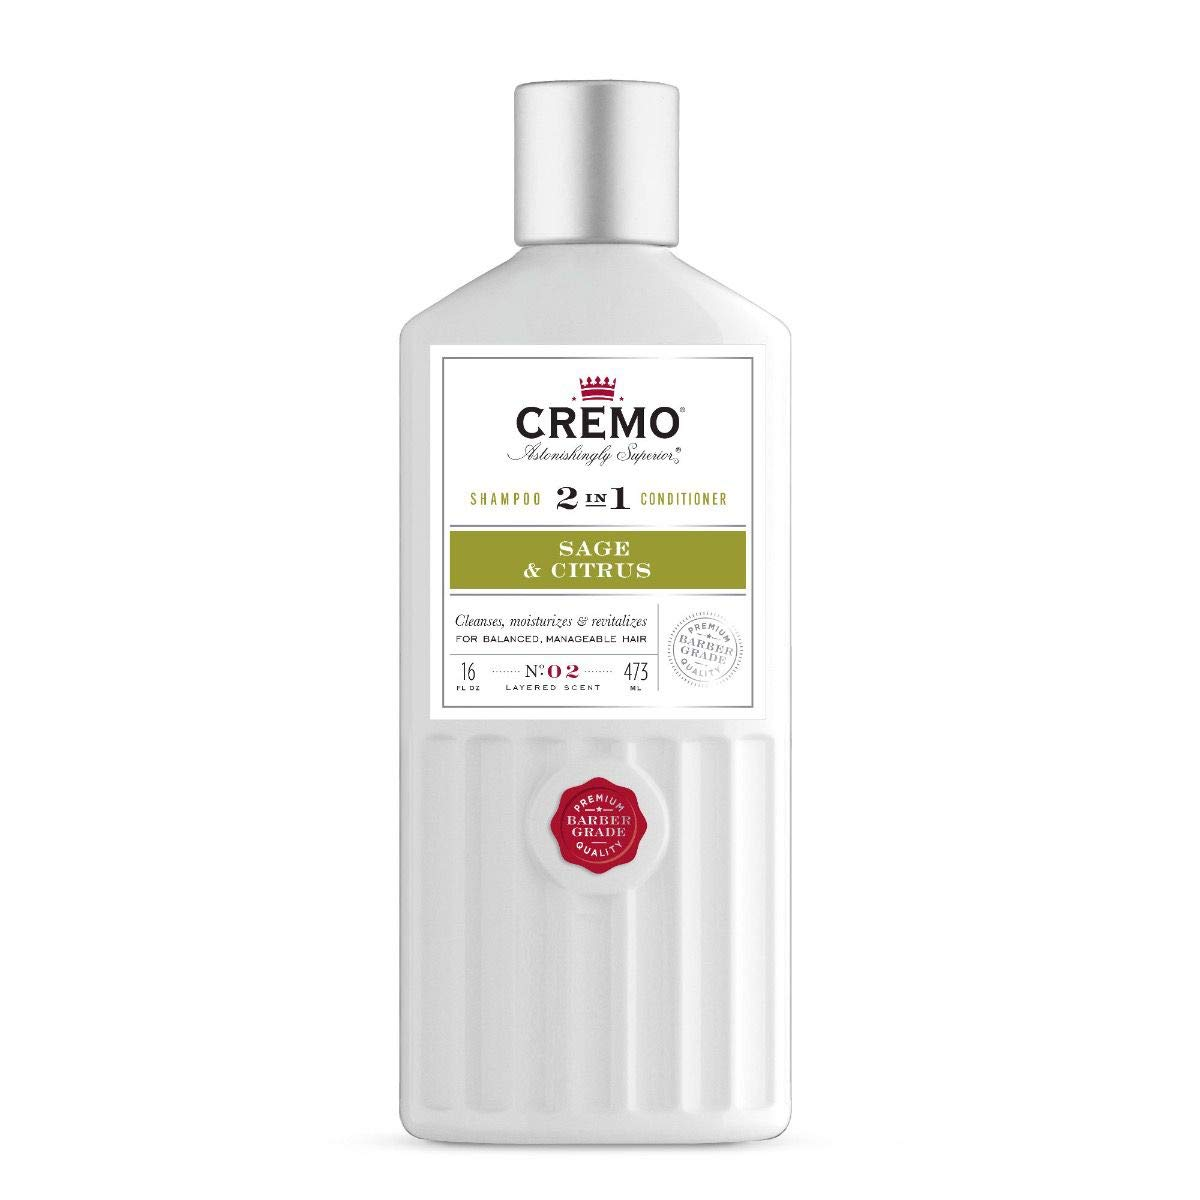 Cremo Barber Grade Sage & Citrus 2-in-1 Shampoo & Conditioner, 16 Oz (2-Pack)